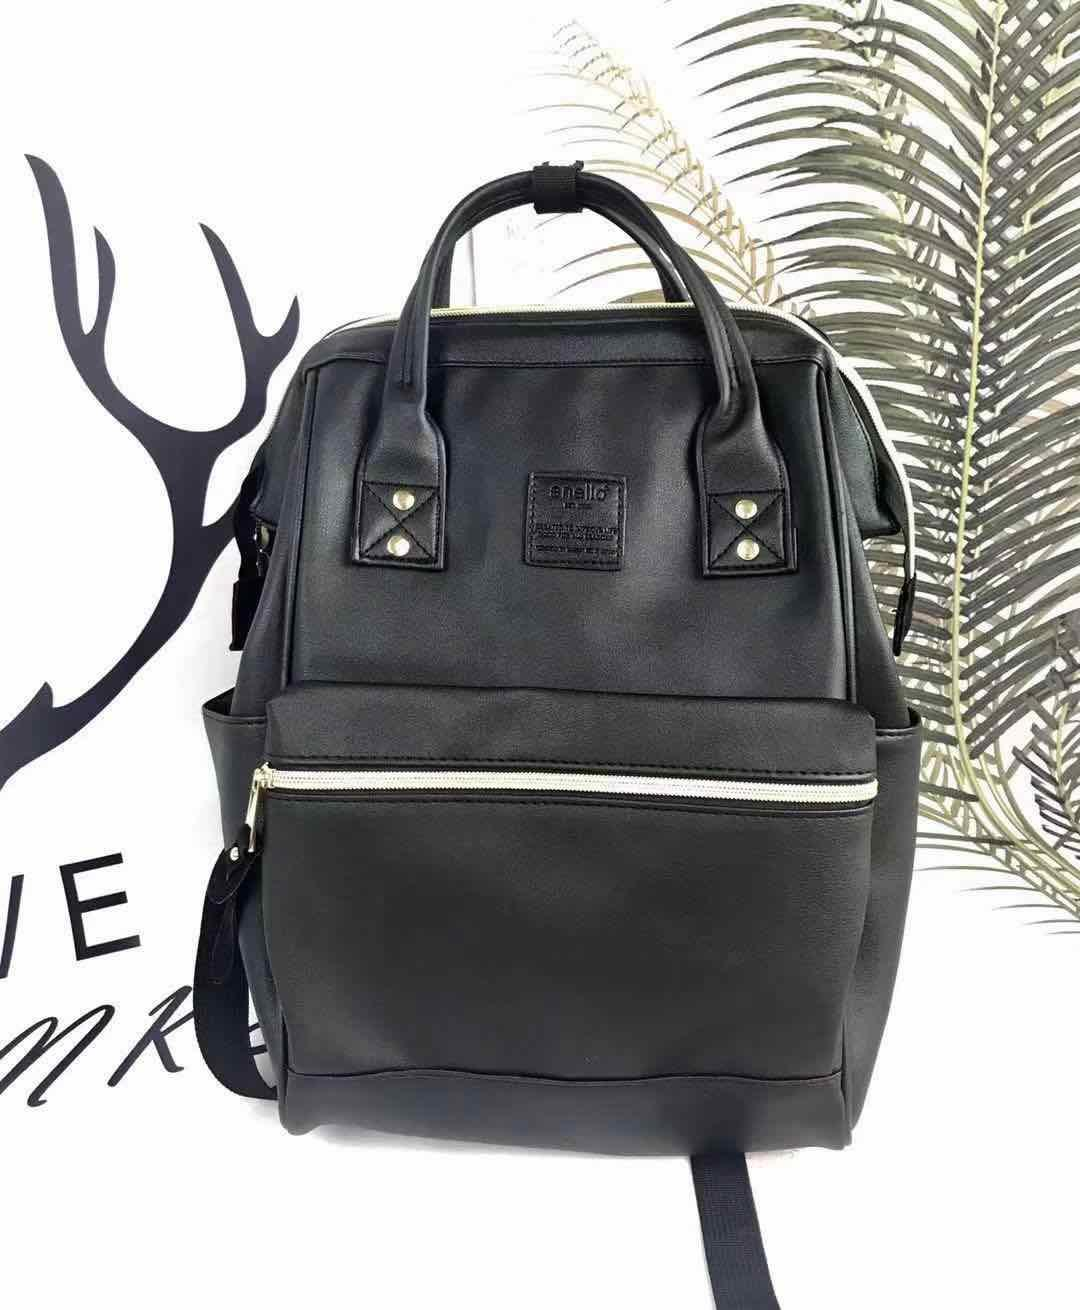 aa242cbe7a34 ANLLO style 888 Multifunctional PU leather 3 Way Shoulder Bag